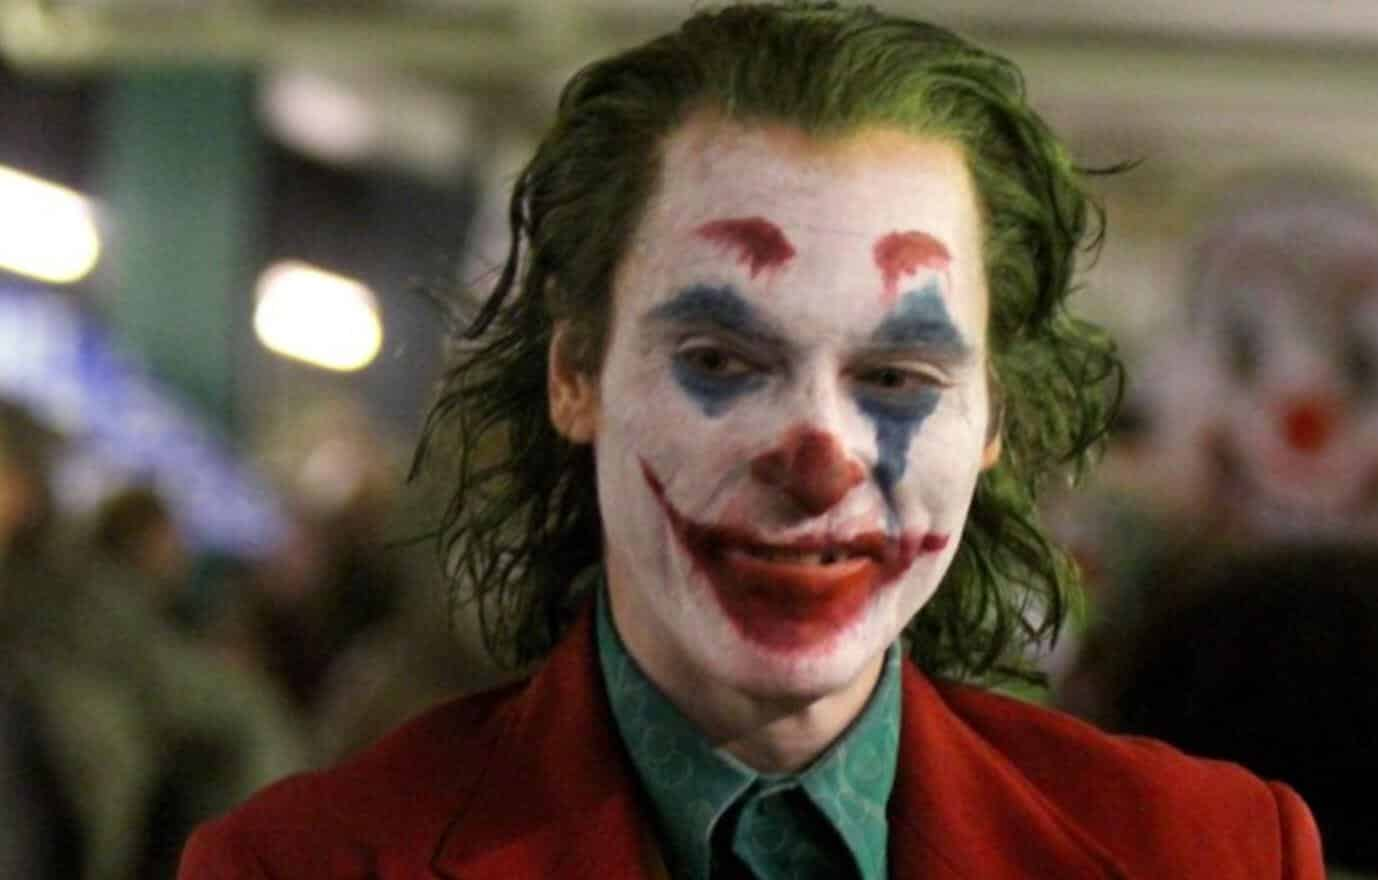 joaquin phoenix u0026 39 s  u0026 39 joker u0026 39  movie said to be a tragic story that comments on today u0026 39 s political climate